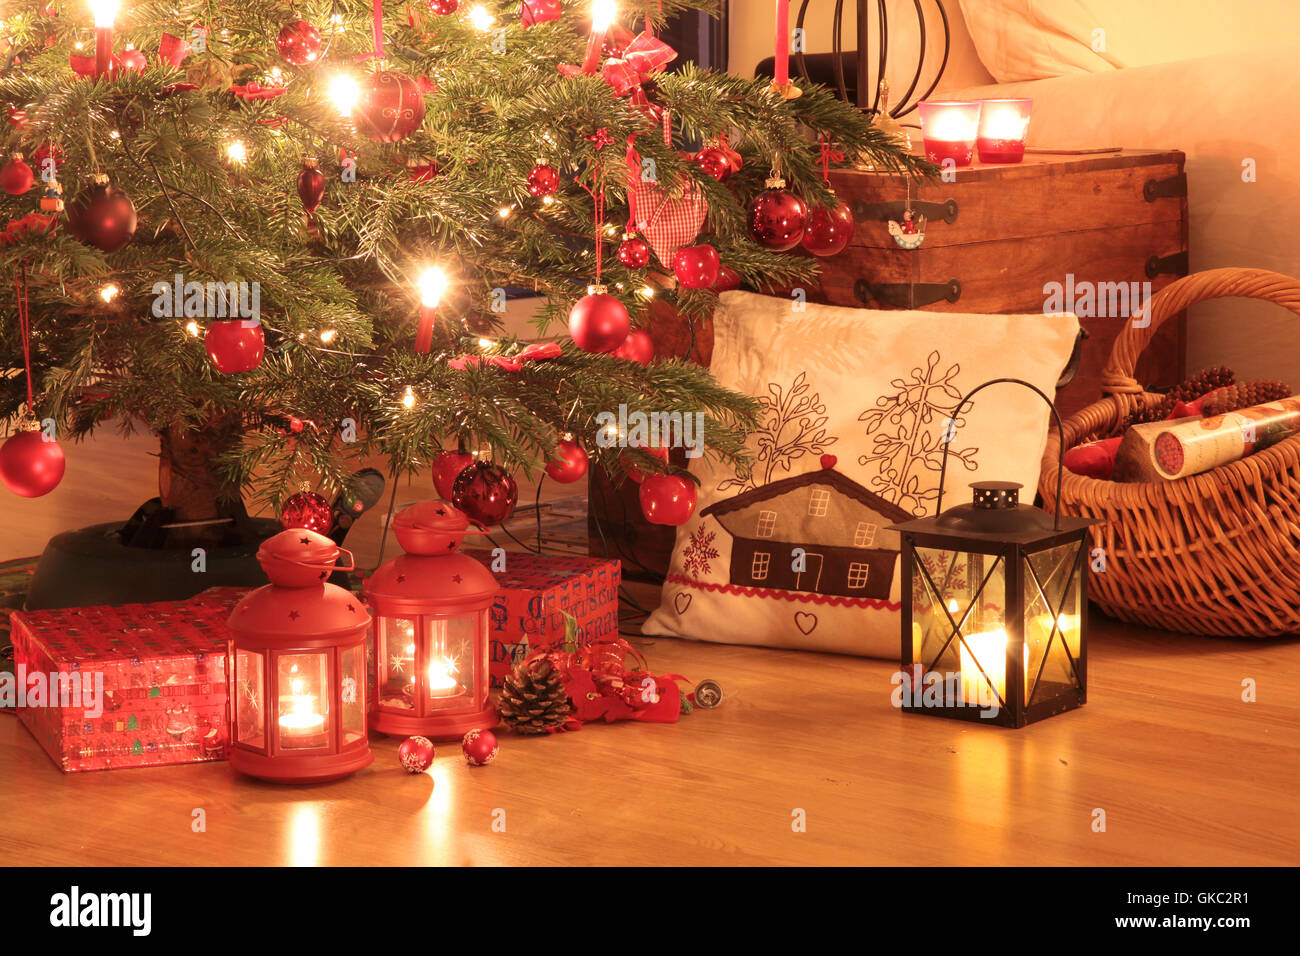 christmas presents under the tree - Stock Image